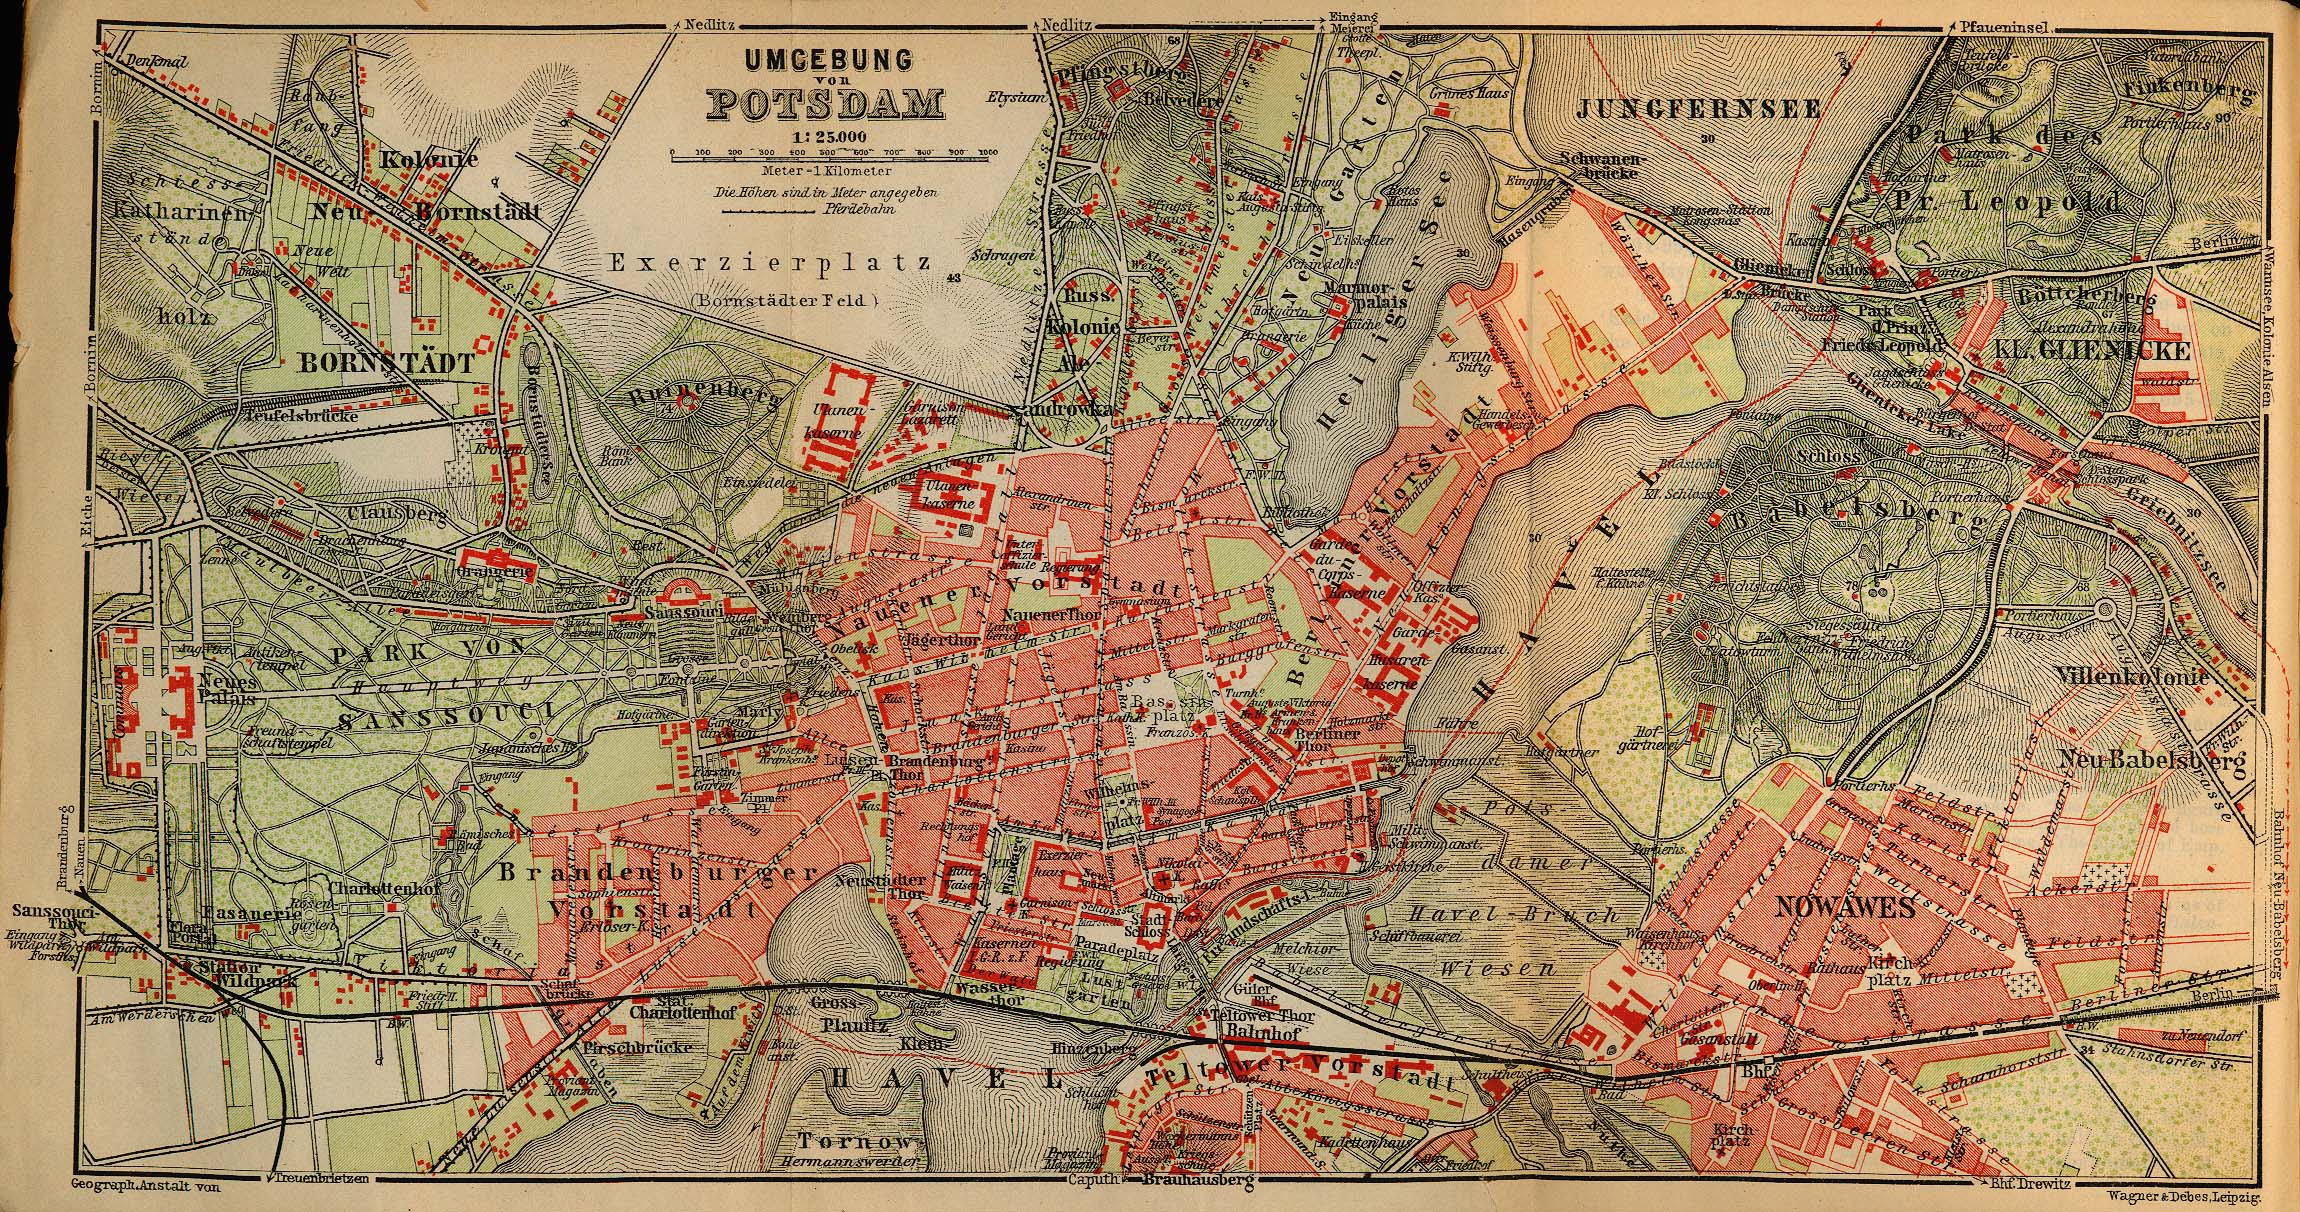 maps and plans from baedekers northern germany 1910